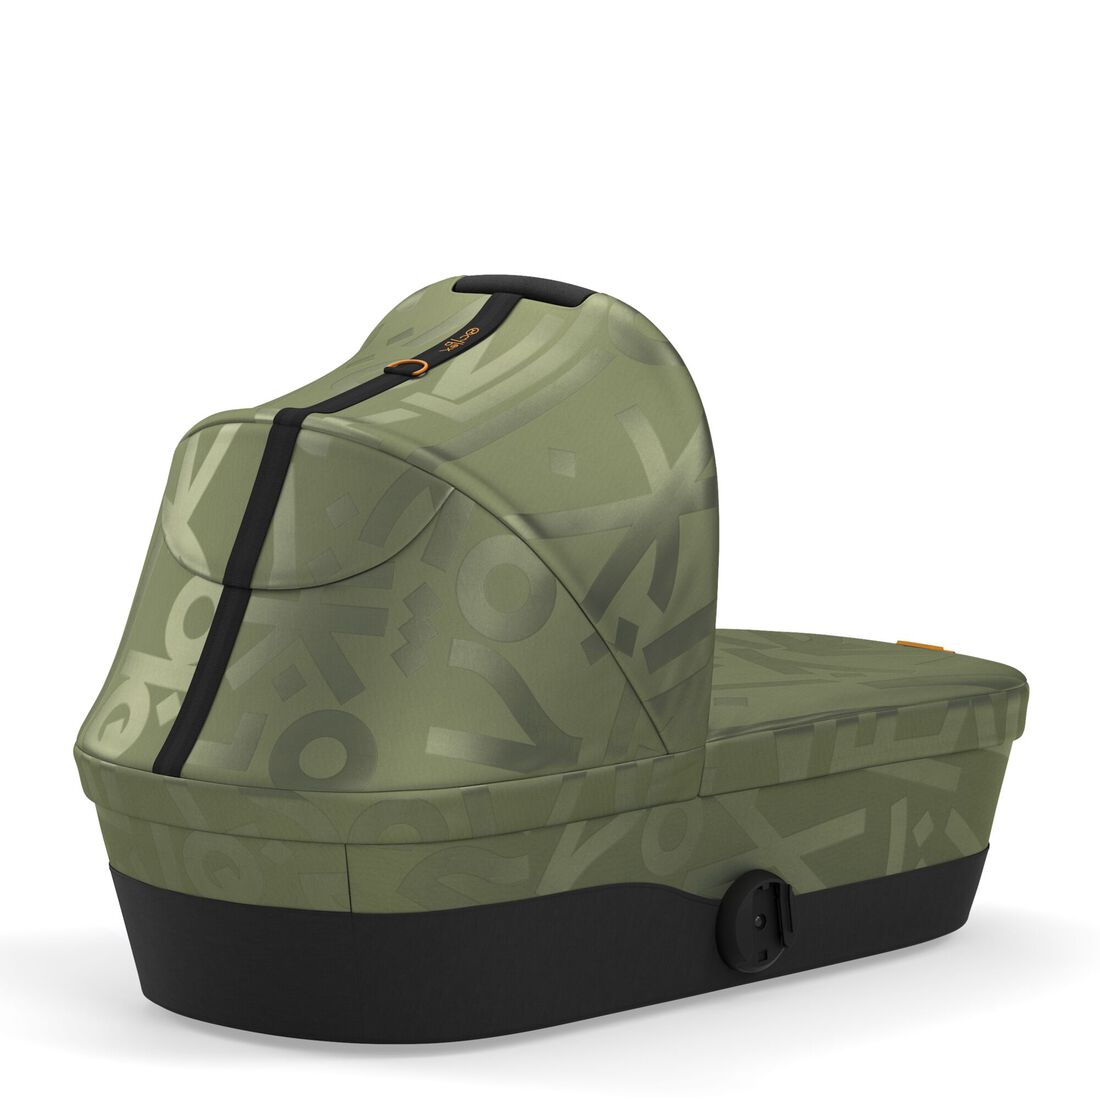 CYBEX Melio Cot - Olive Green in Olive Green large Bild 4